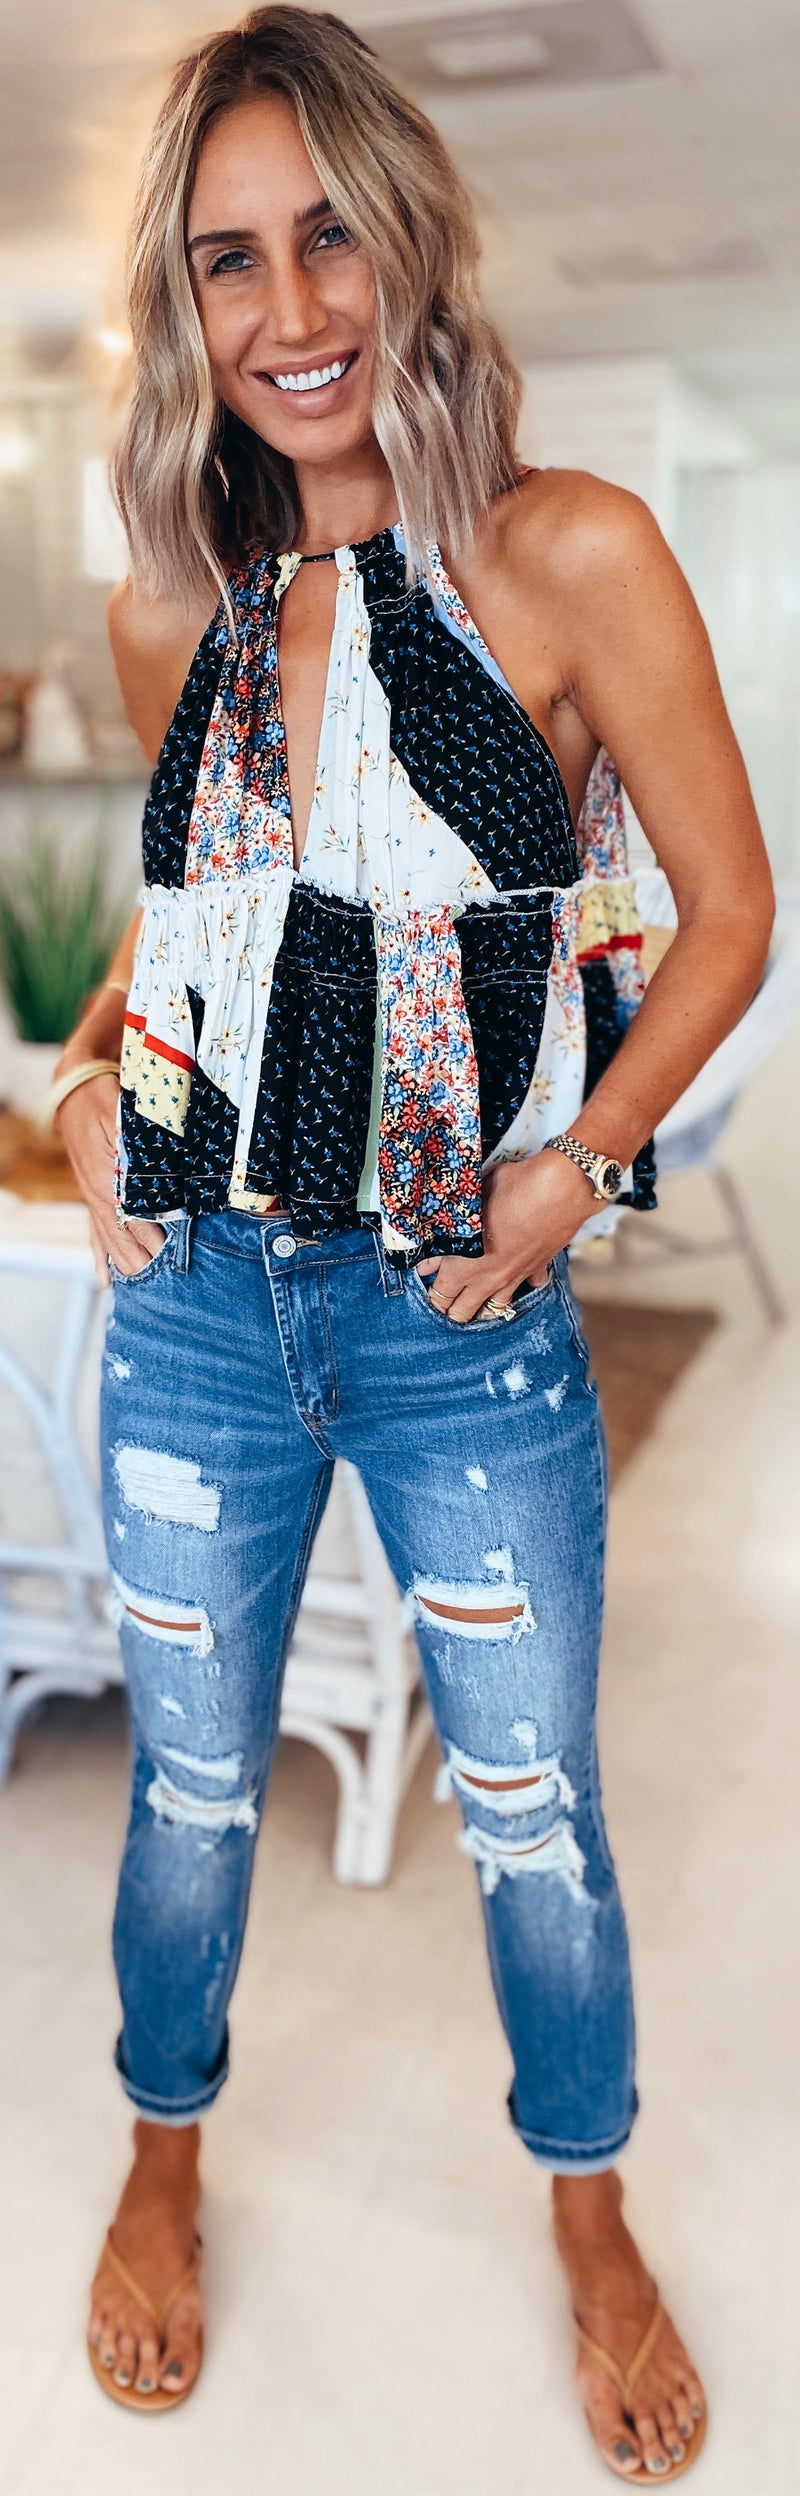 The Floral Patchwork Top